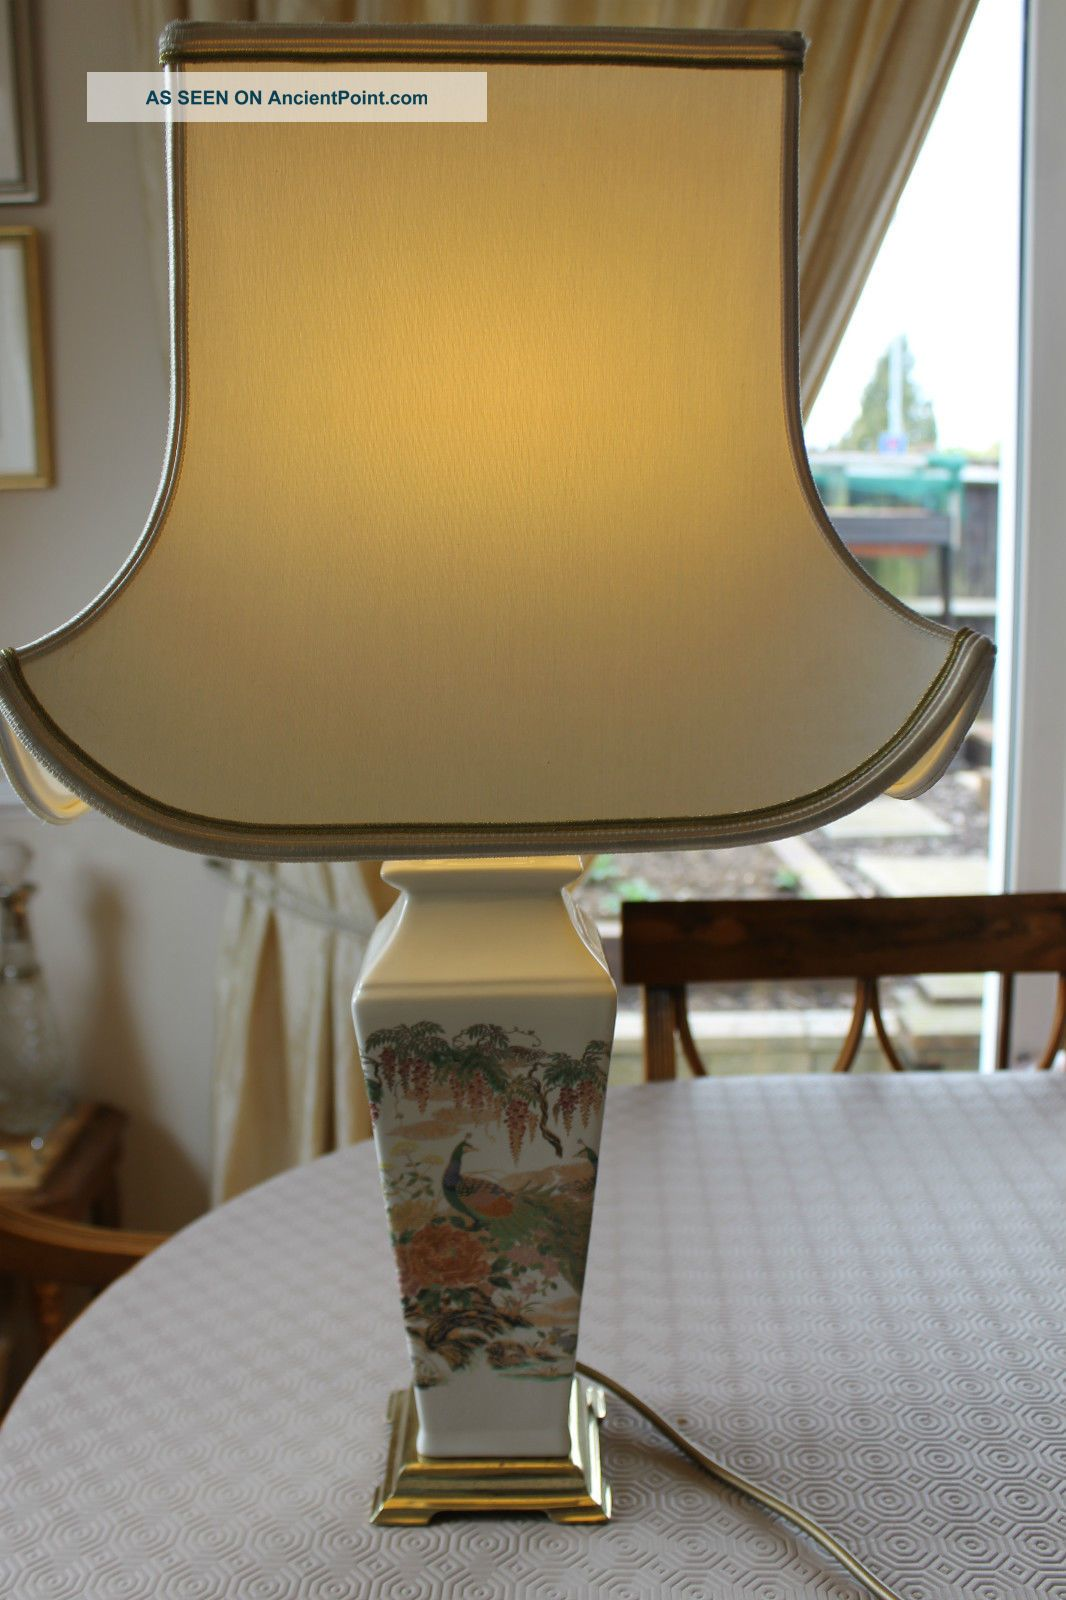 Vintage Pottery Table Lamp F.  W.  O.  Circa 1960s Reproduction Lamps photo